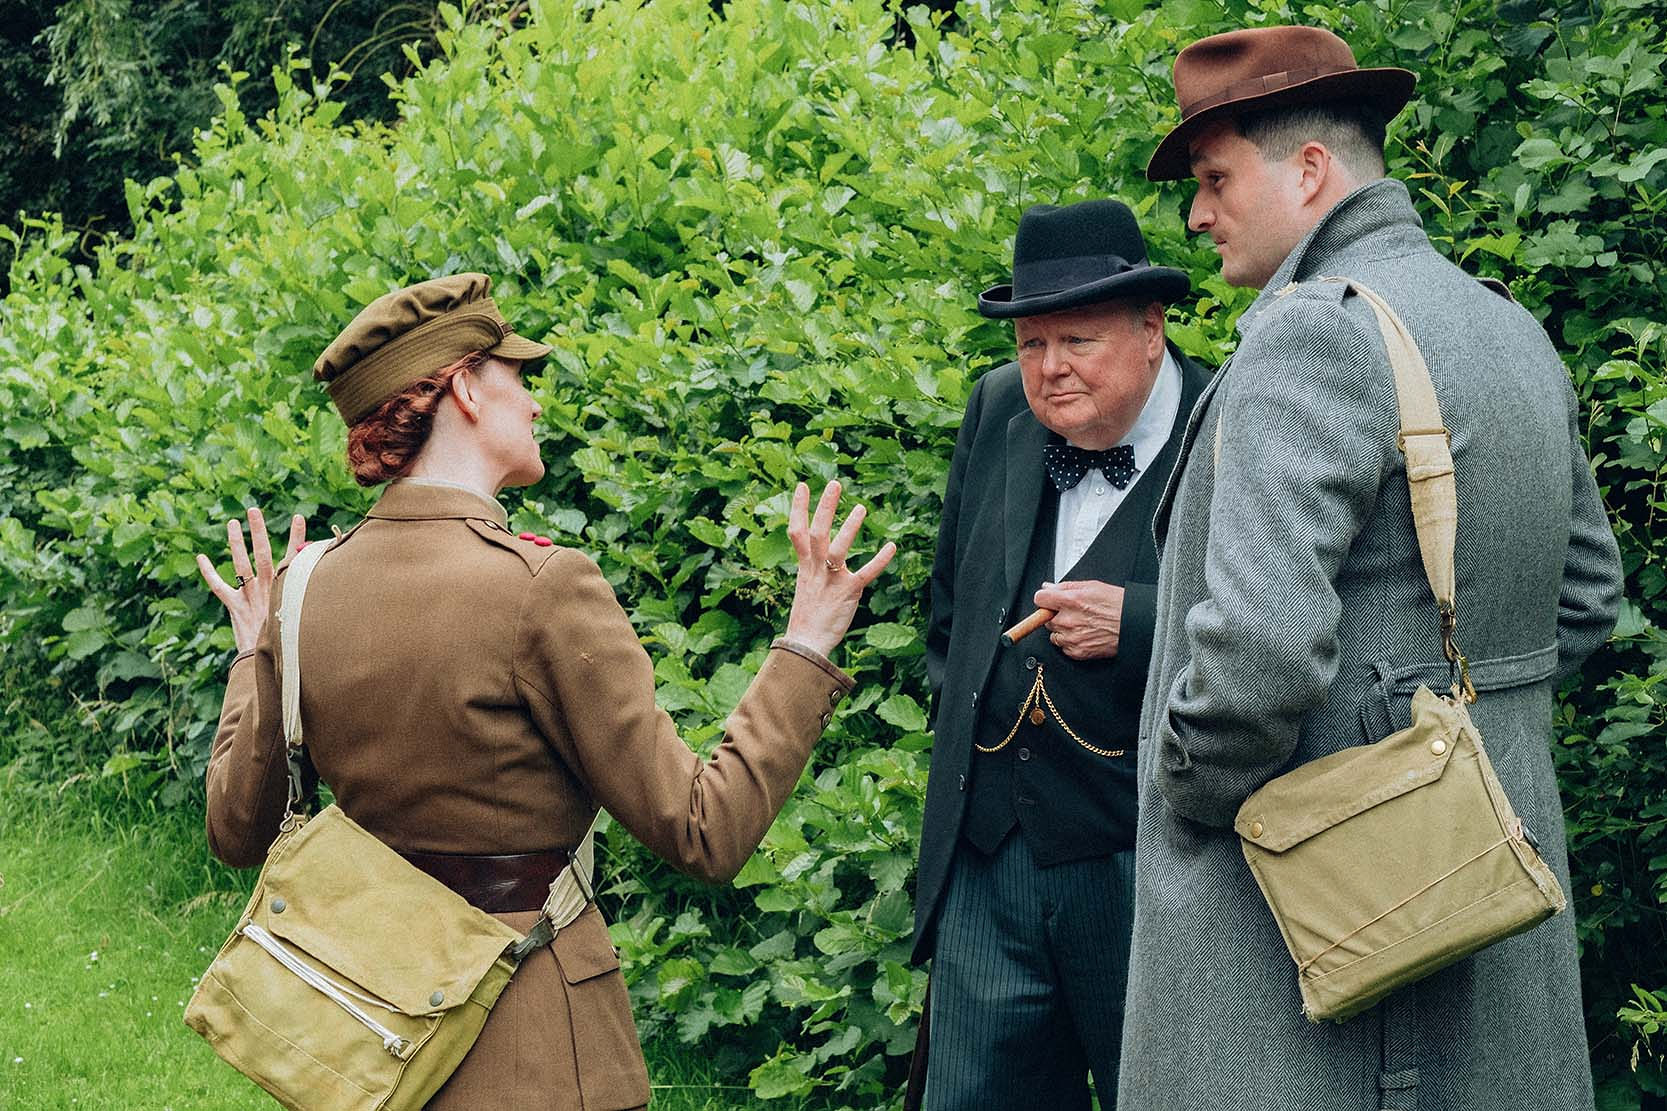 On the Home Front – 1940s weekend